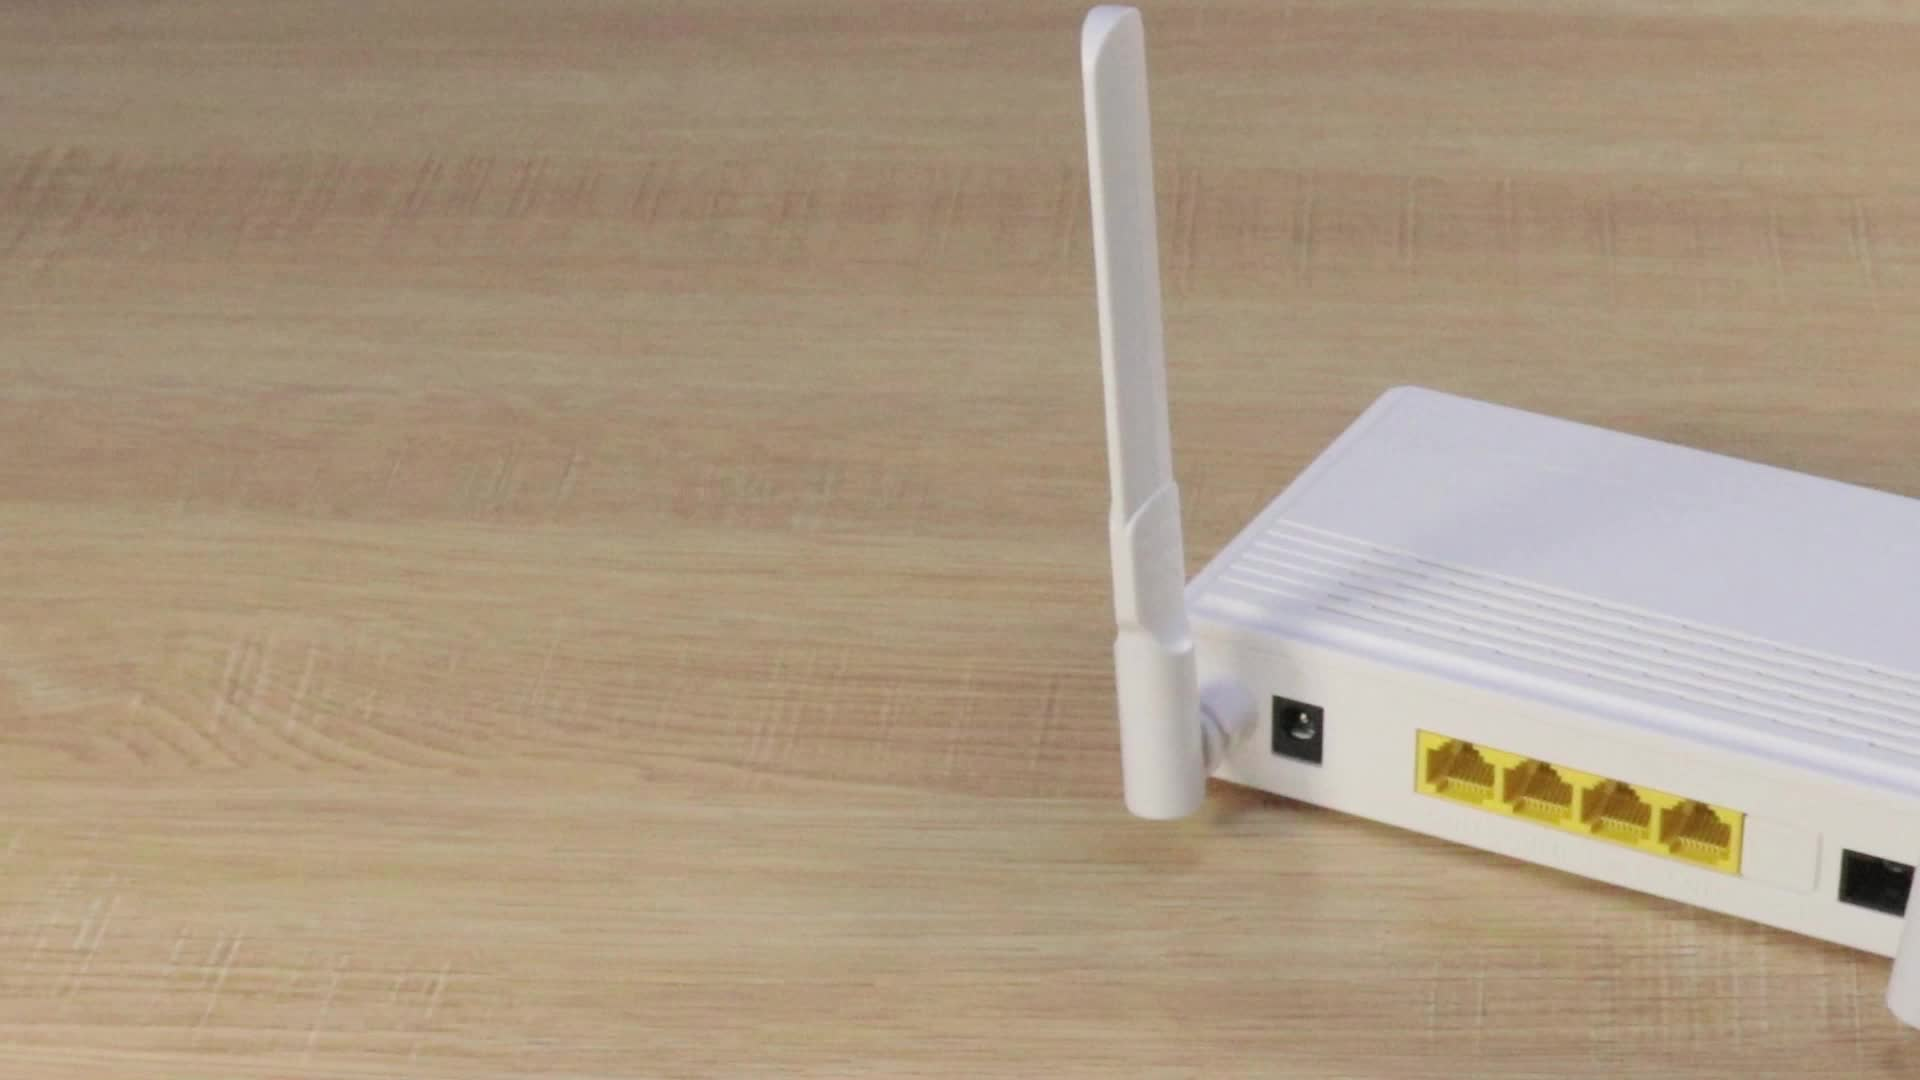 GEPON EPON 1GE 3FE Wireless wifi onu Compliant with IEEE802.11b/g/n